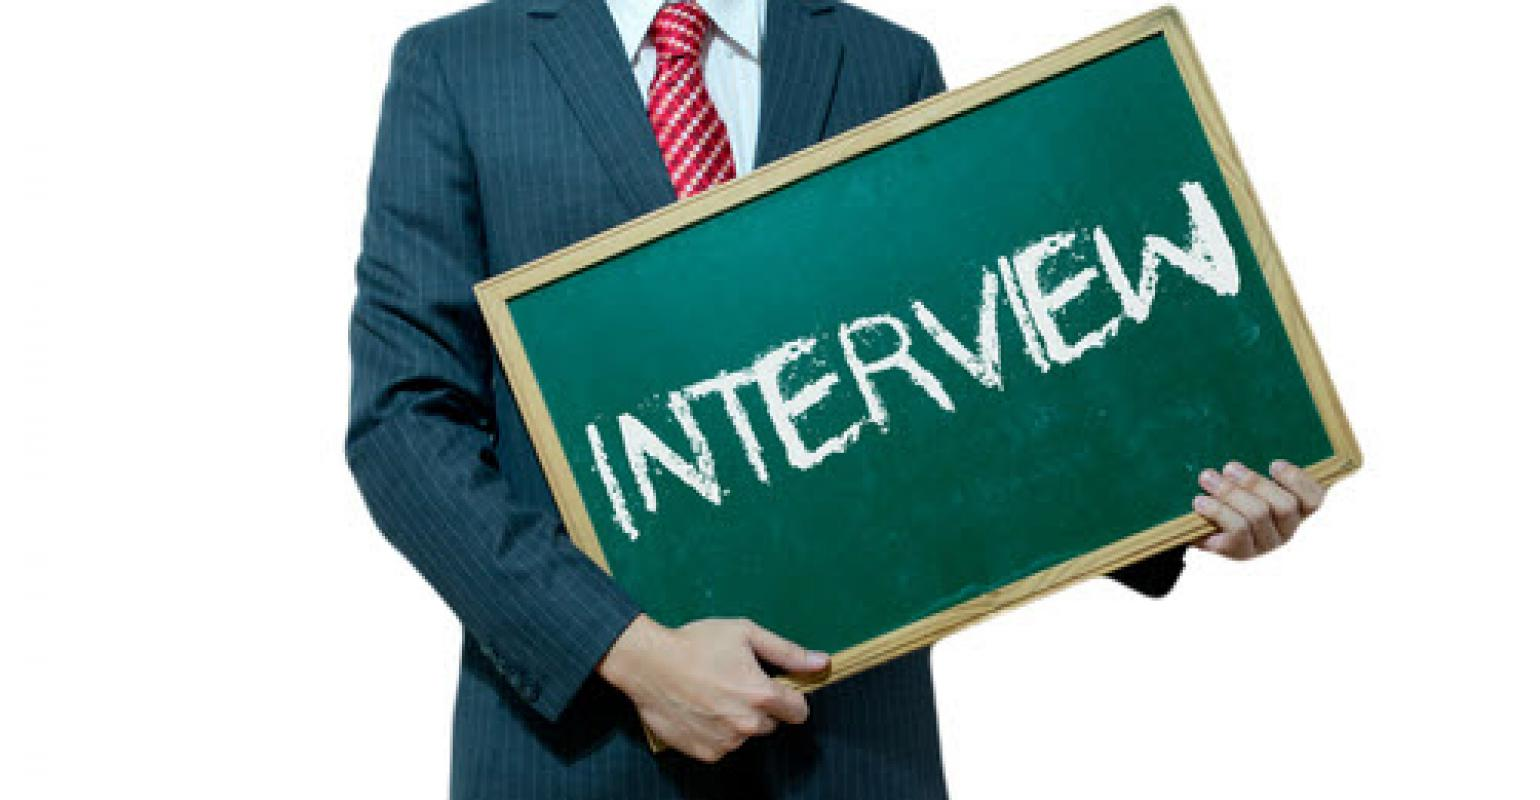 Looking for interview tips? You've come to the right place.